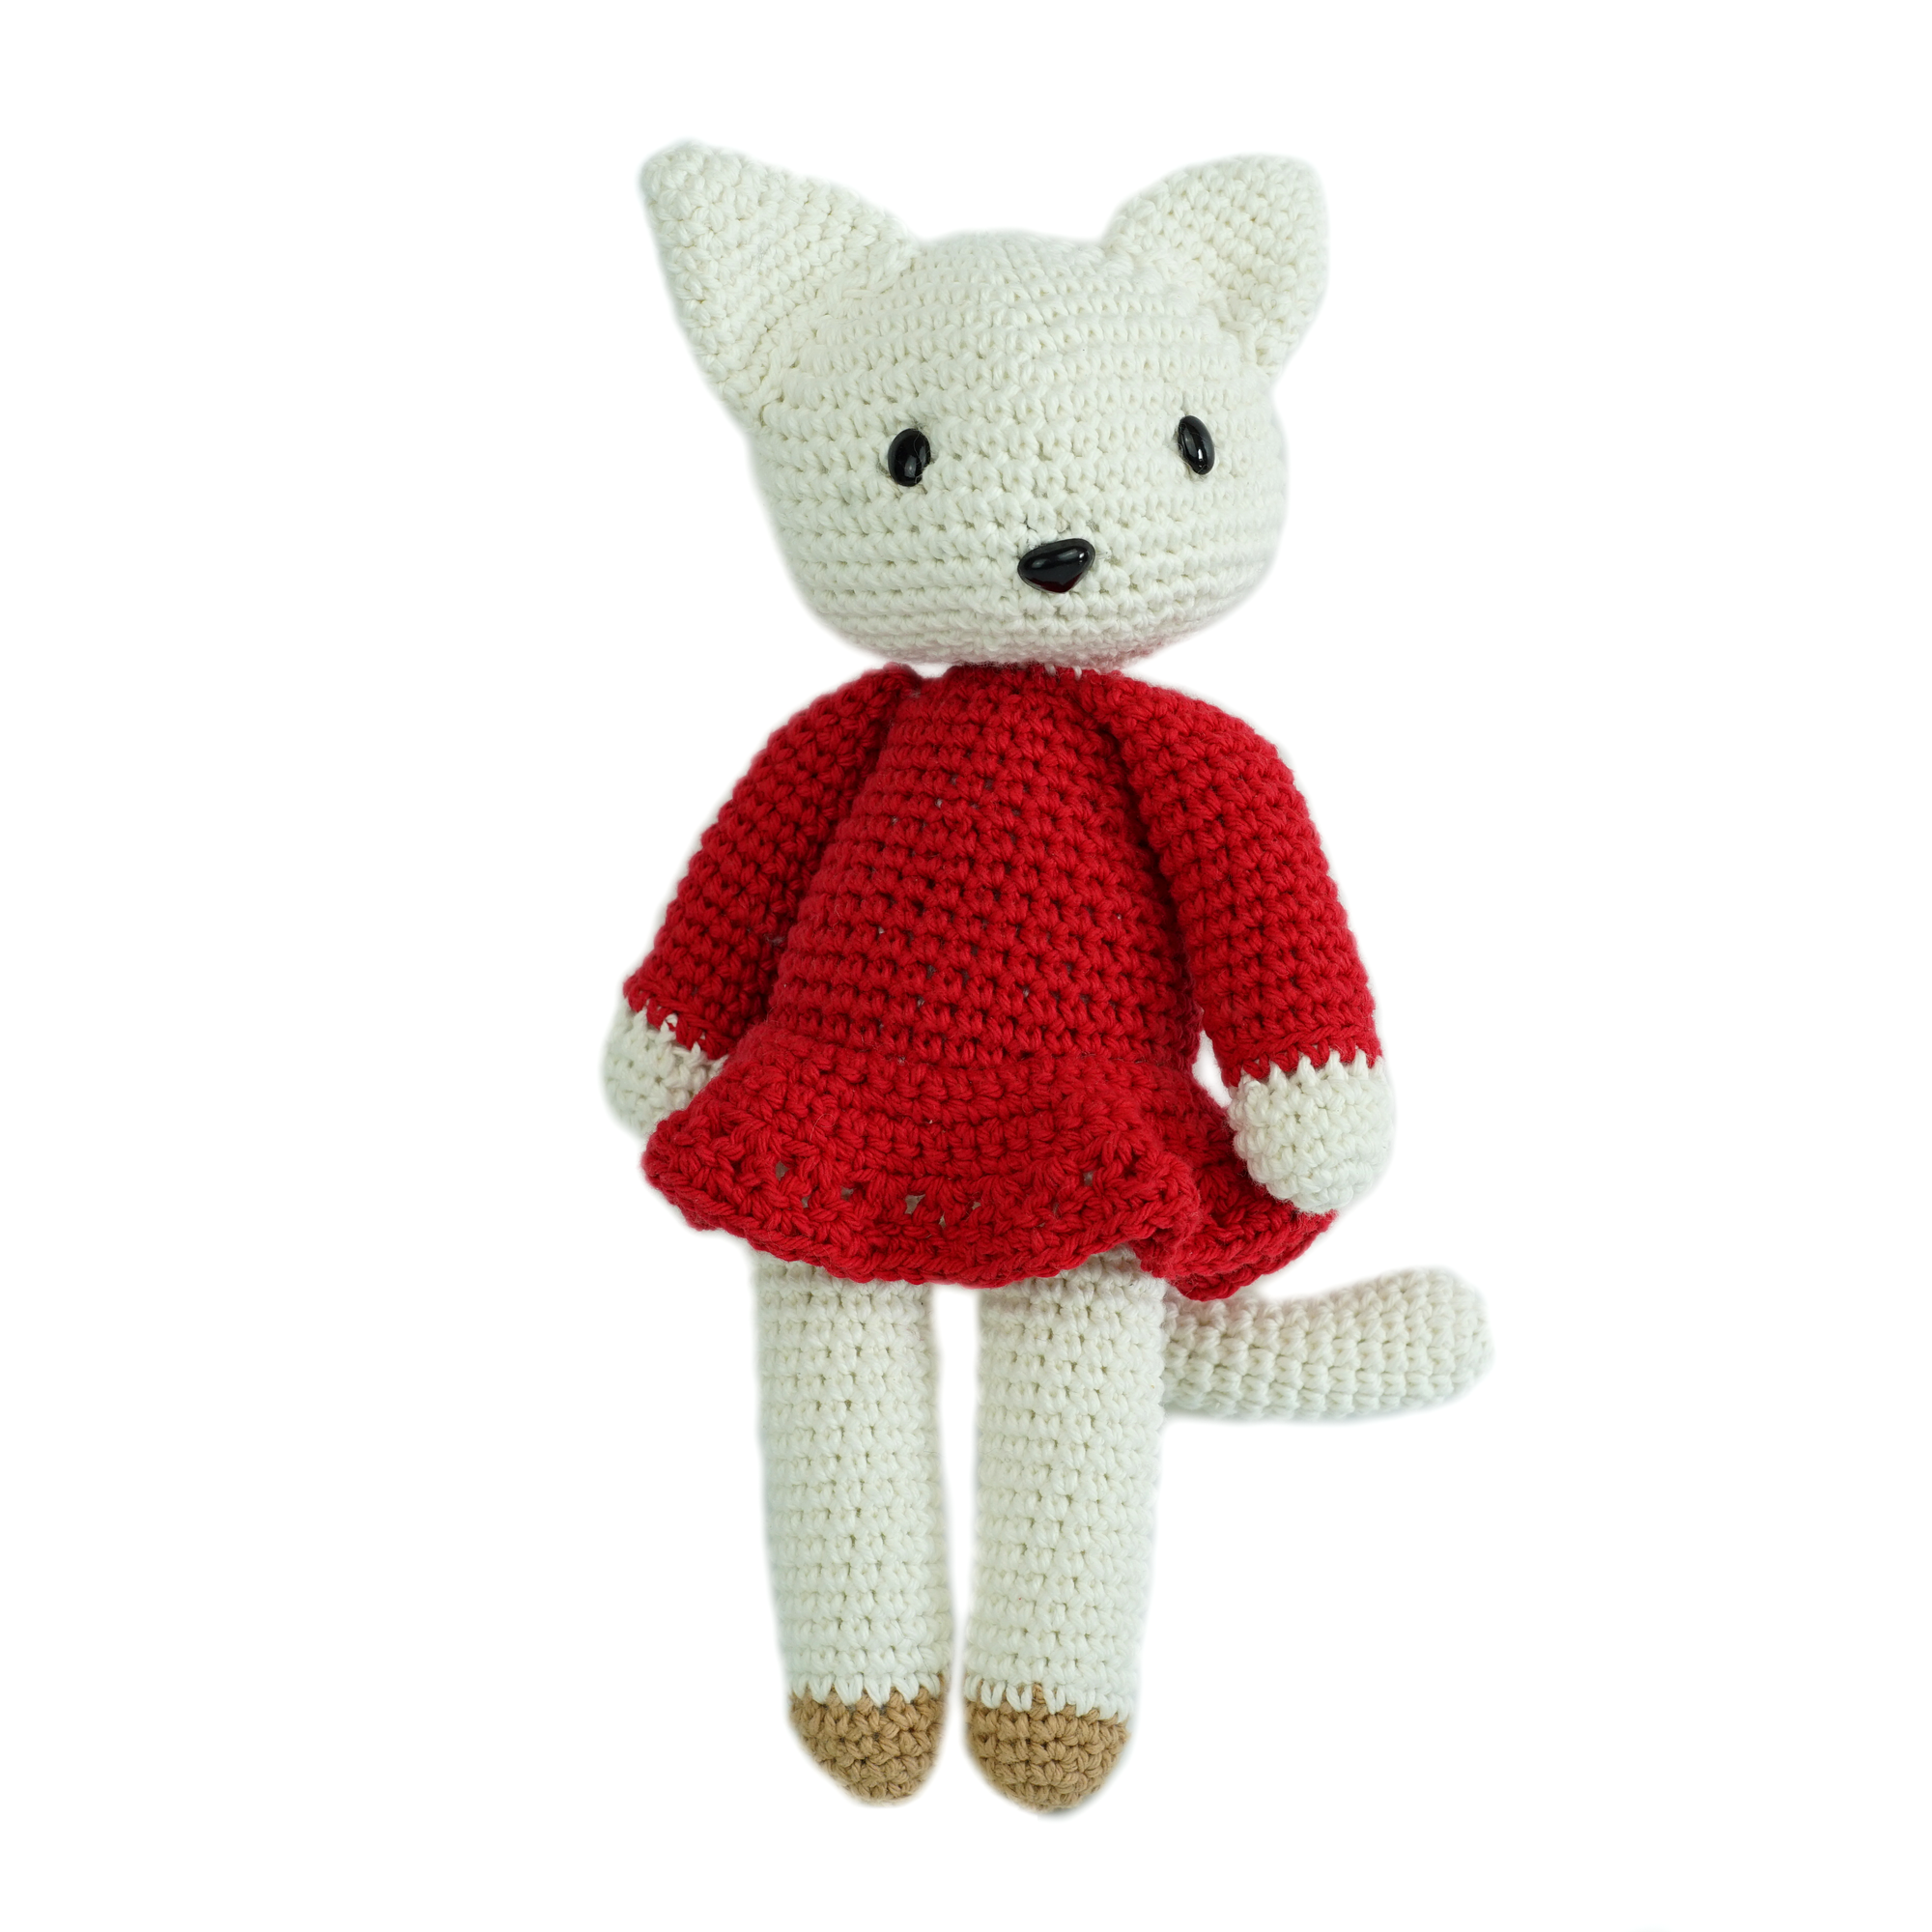 Kitty | Toys | Arunny | [product_tag] - Fair Bazaar Ethical Living